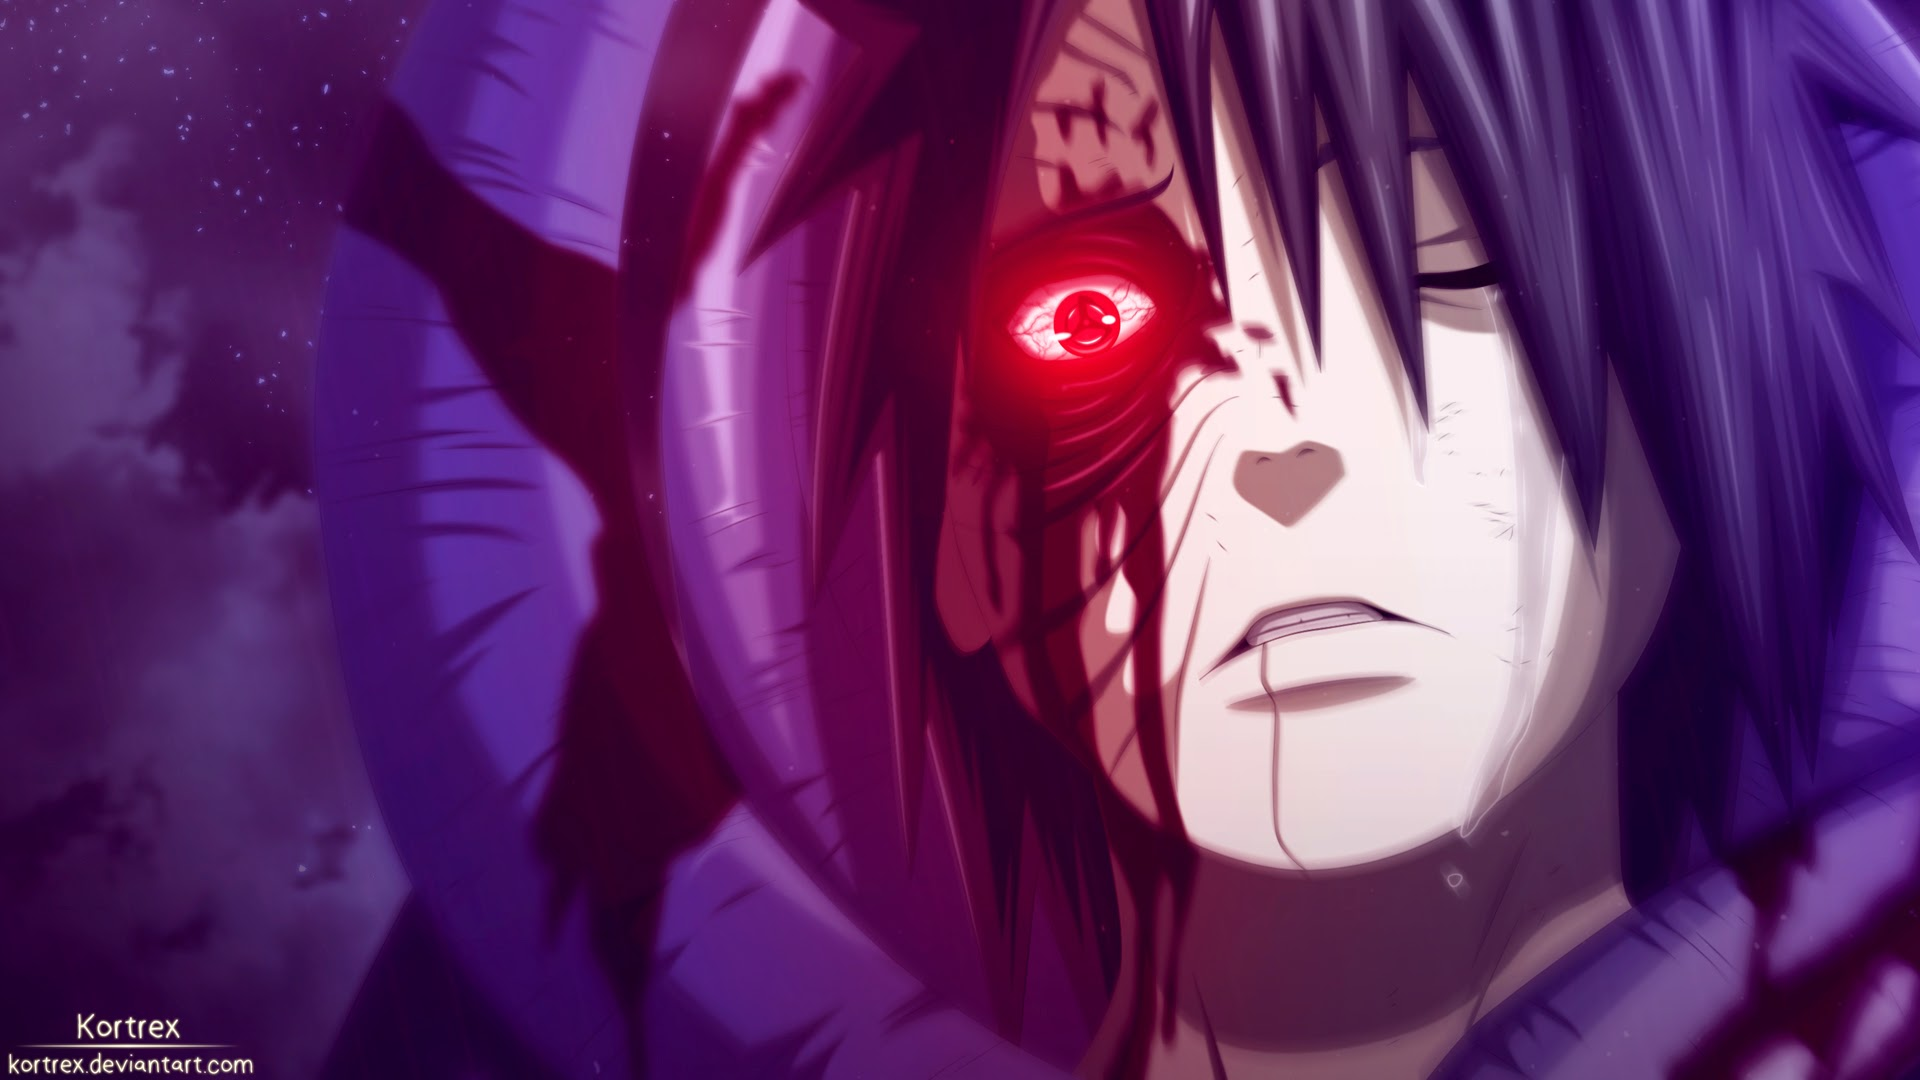 obito sharingan eyes 7s wallpaper hd